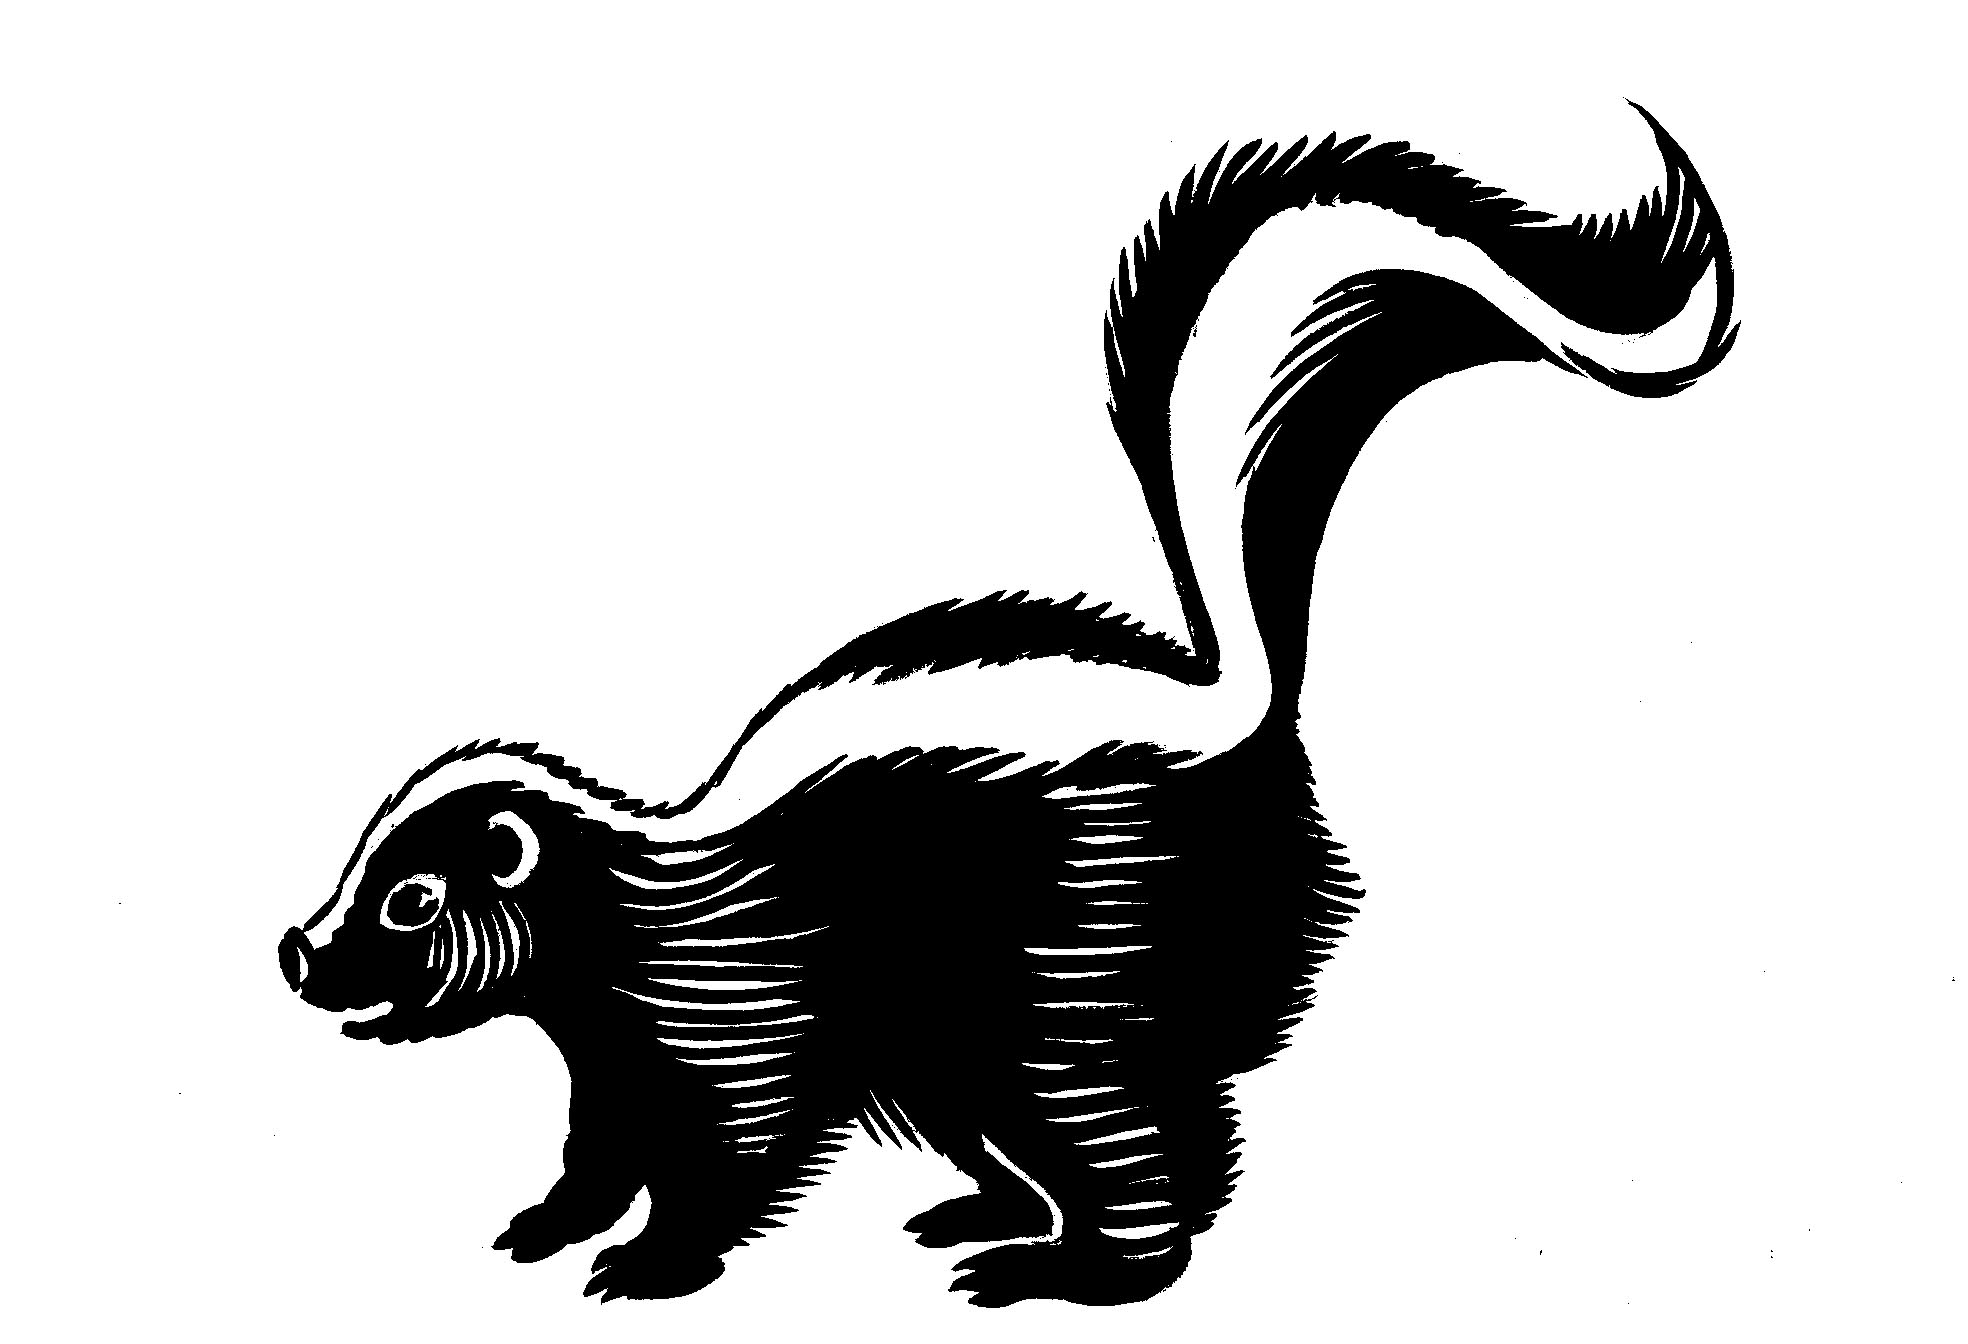 Stinky Skunk Cartoon Clipart Free Clip A-Stinky Skunk Cartoon Clipart Free Clip Art Images-17